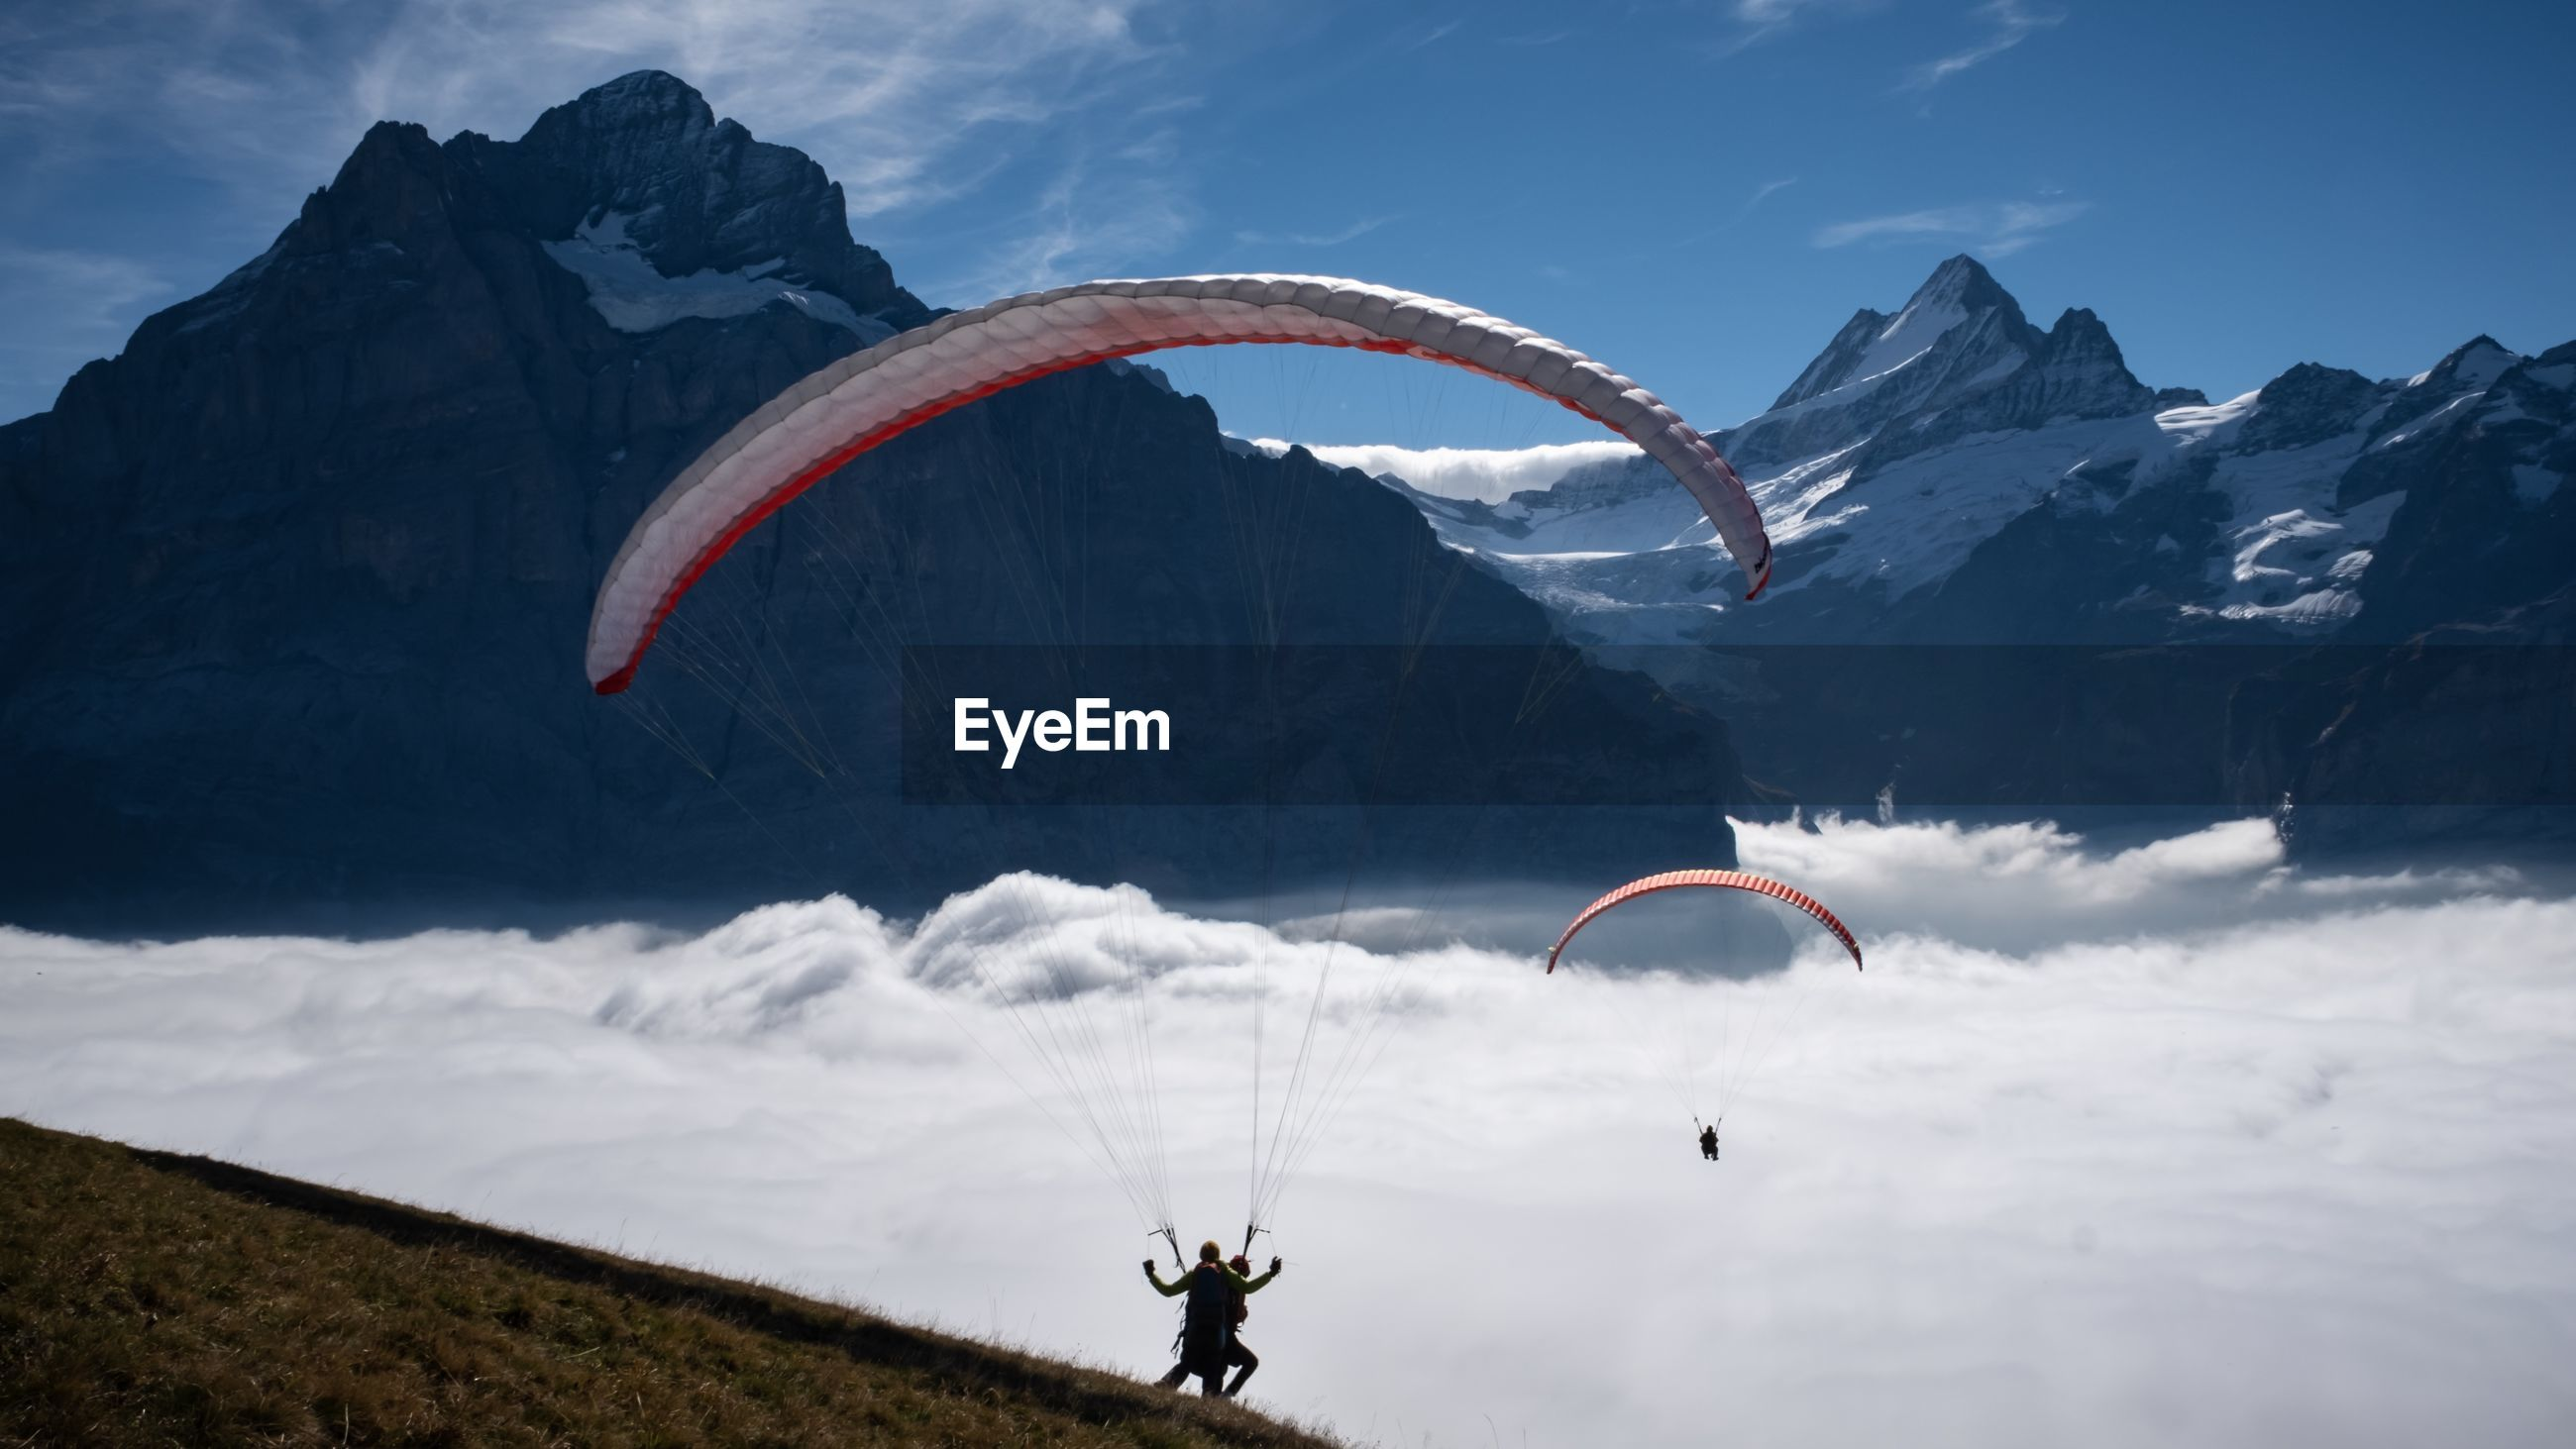 High angle view of people paragliding